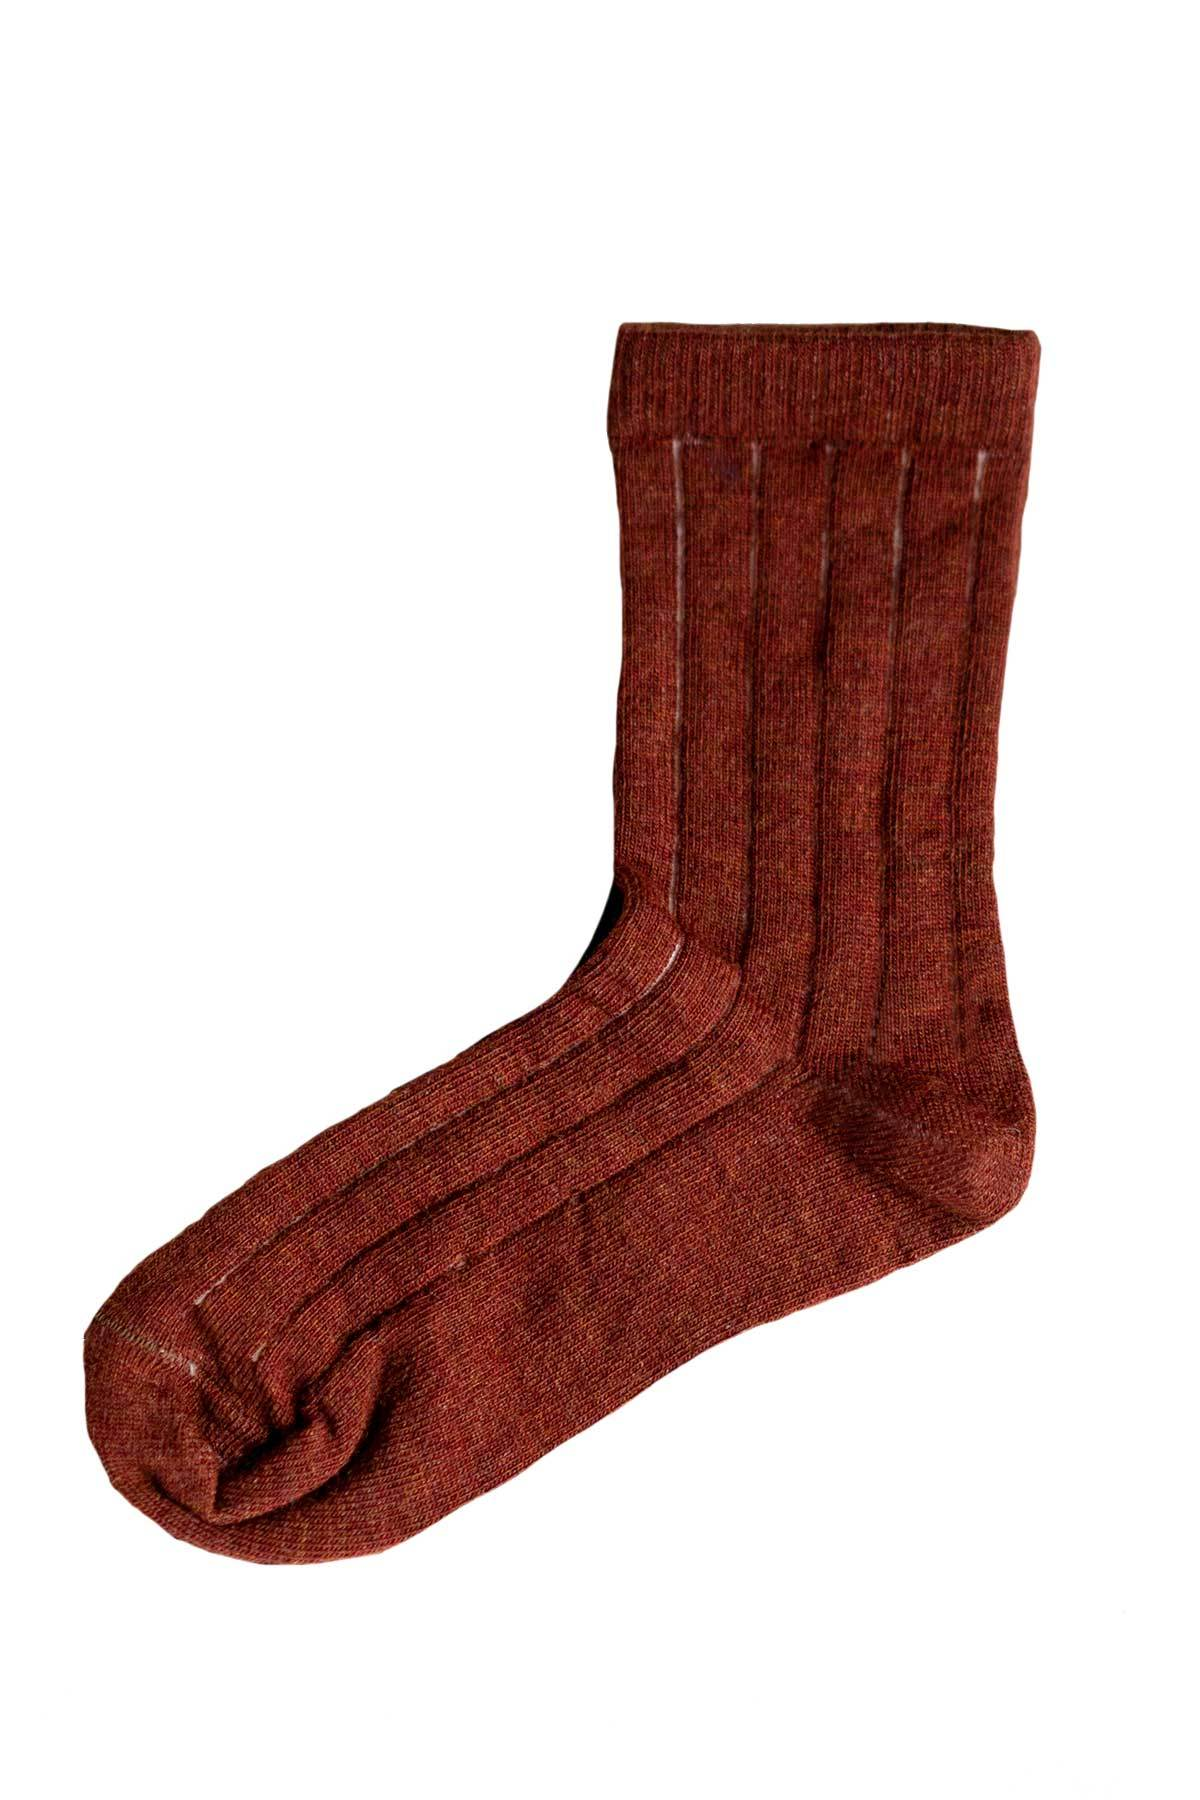 Merino Nature Socks- Rust